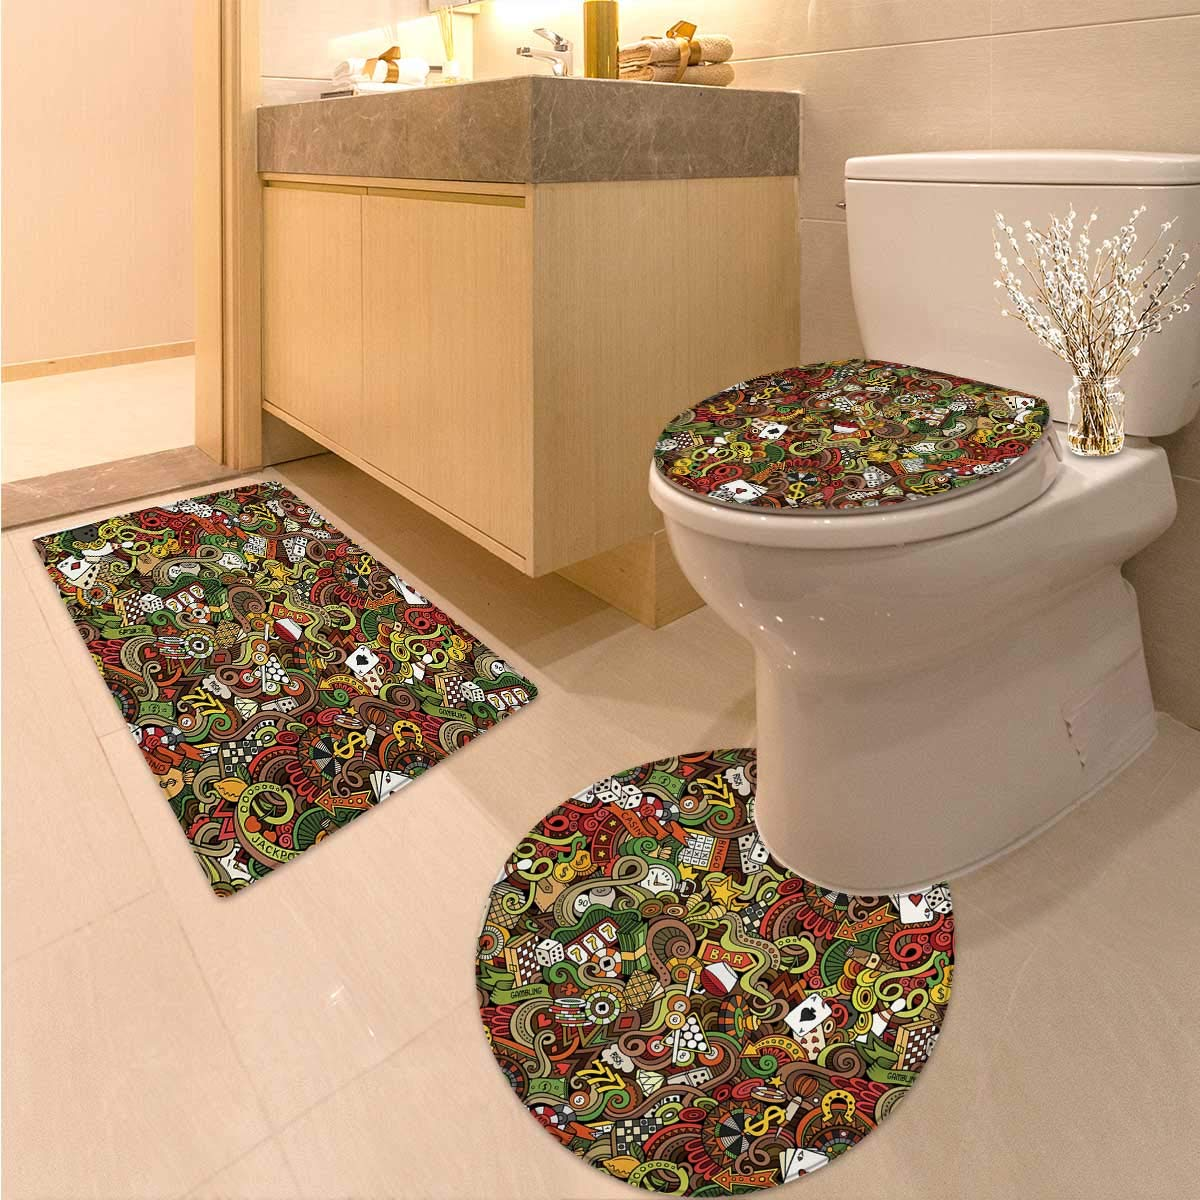 Anhuthree Casino Toilet Floor mat Set Doodles Style Artwork of Bingo and Cards Excitement Checkers King Tambourine Vegas Printed Bath Rug Set Multicolor by Anhuthree